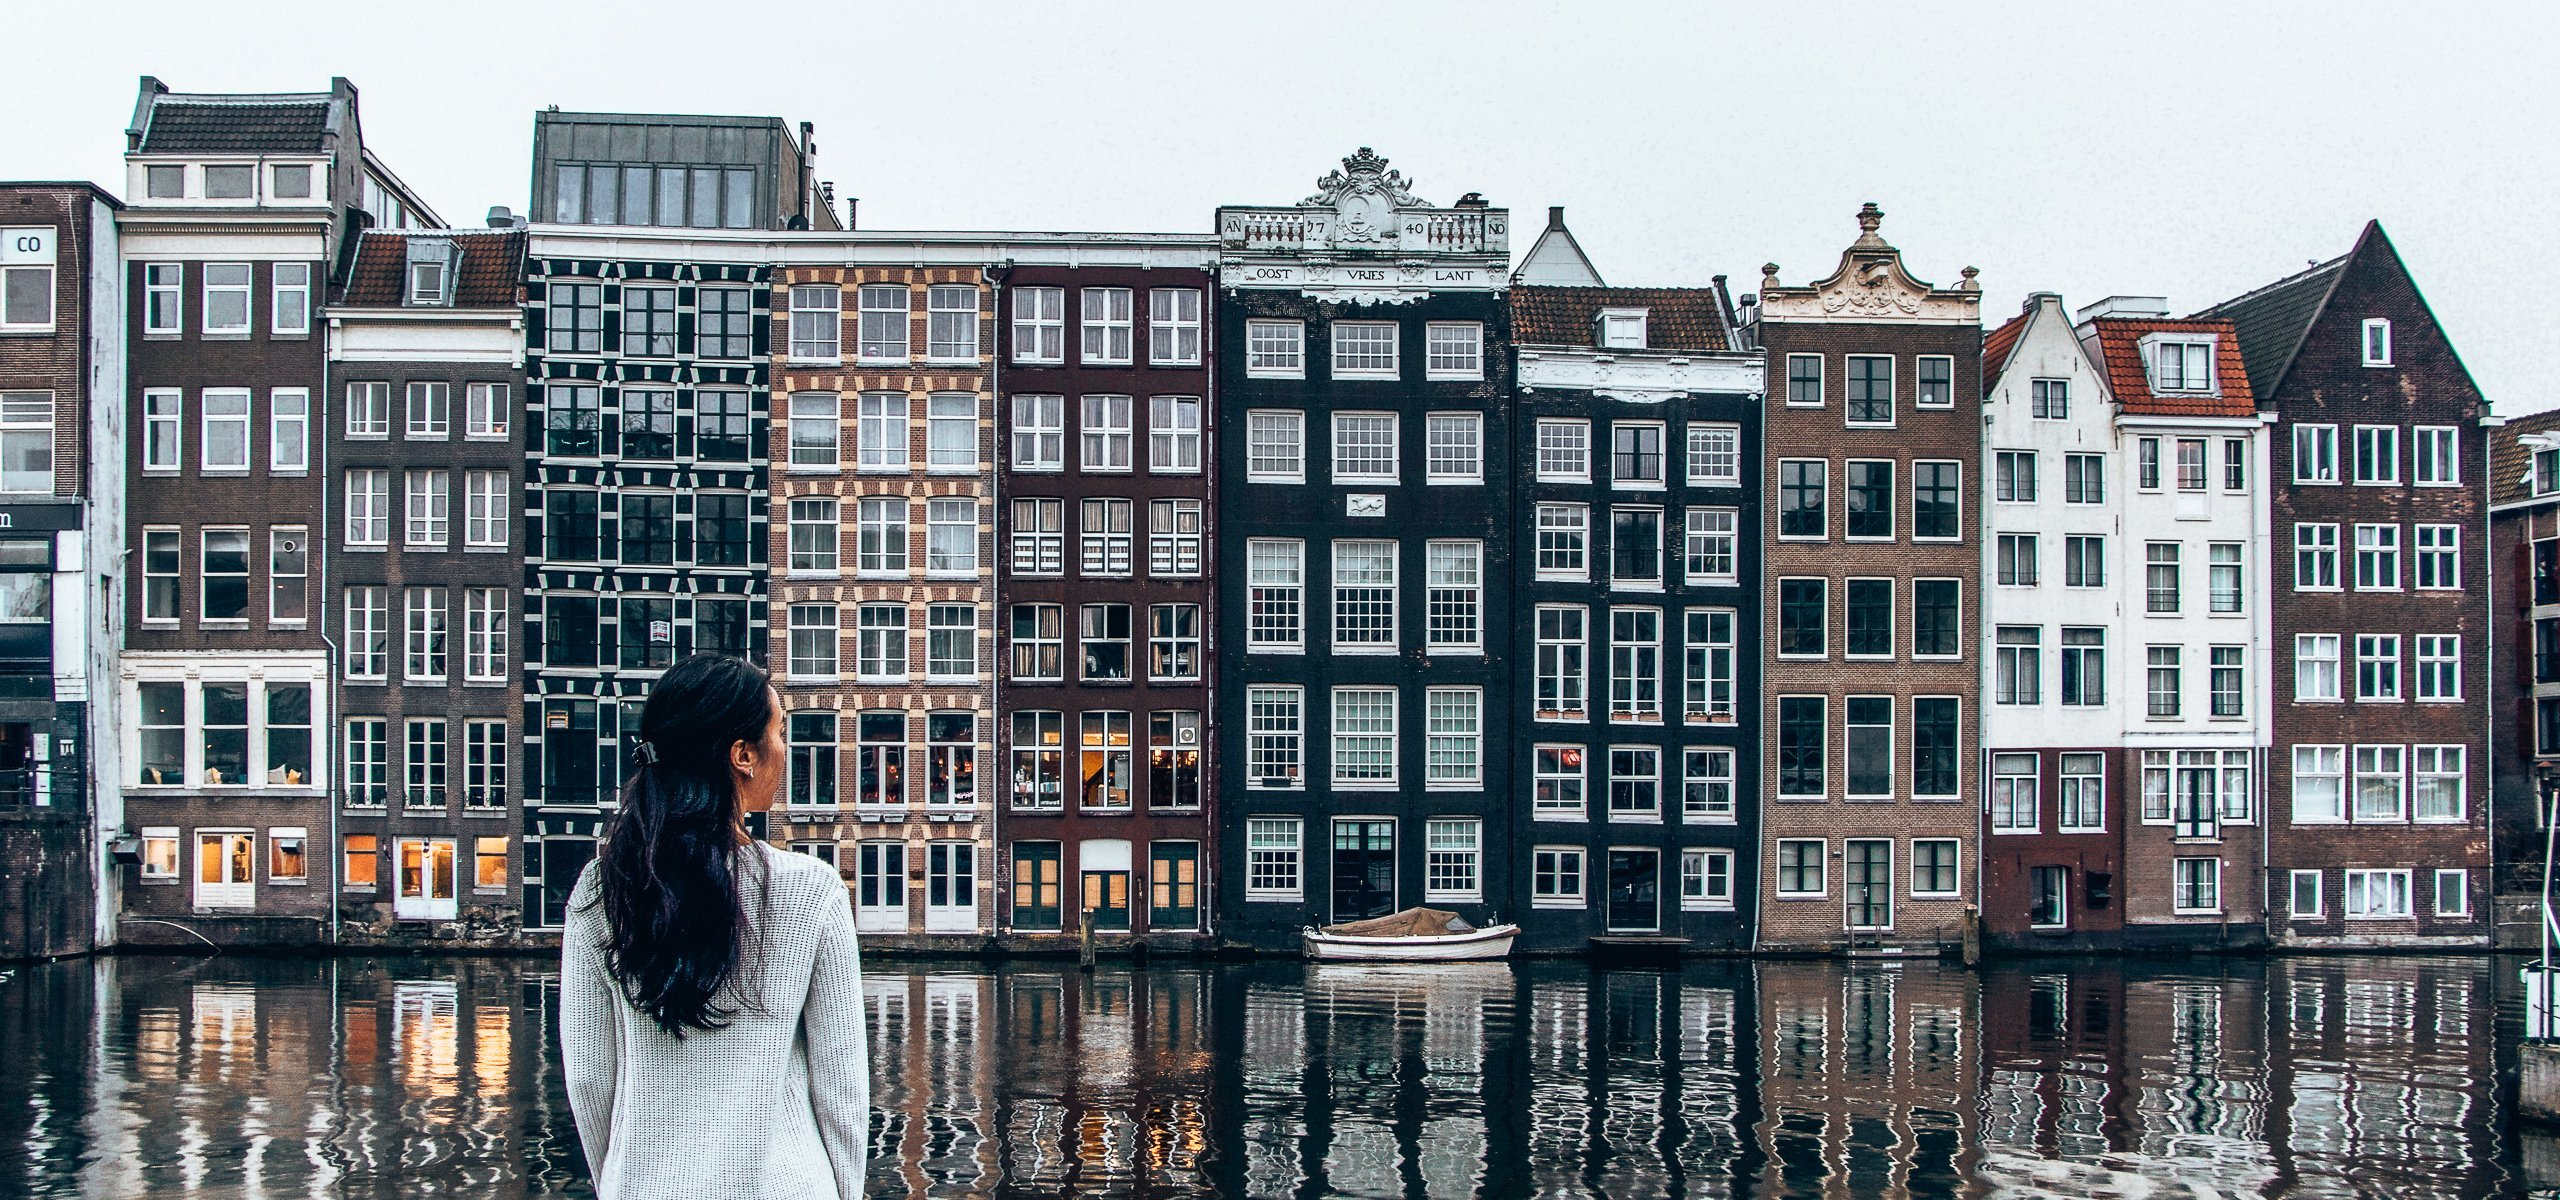 Non touristy weekend guide Amsterdam | Looking out over Damrak in Amsterdam